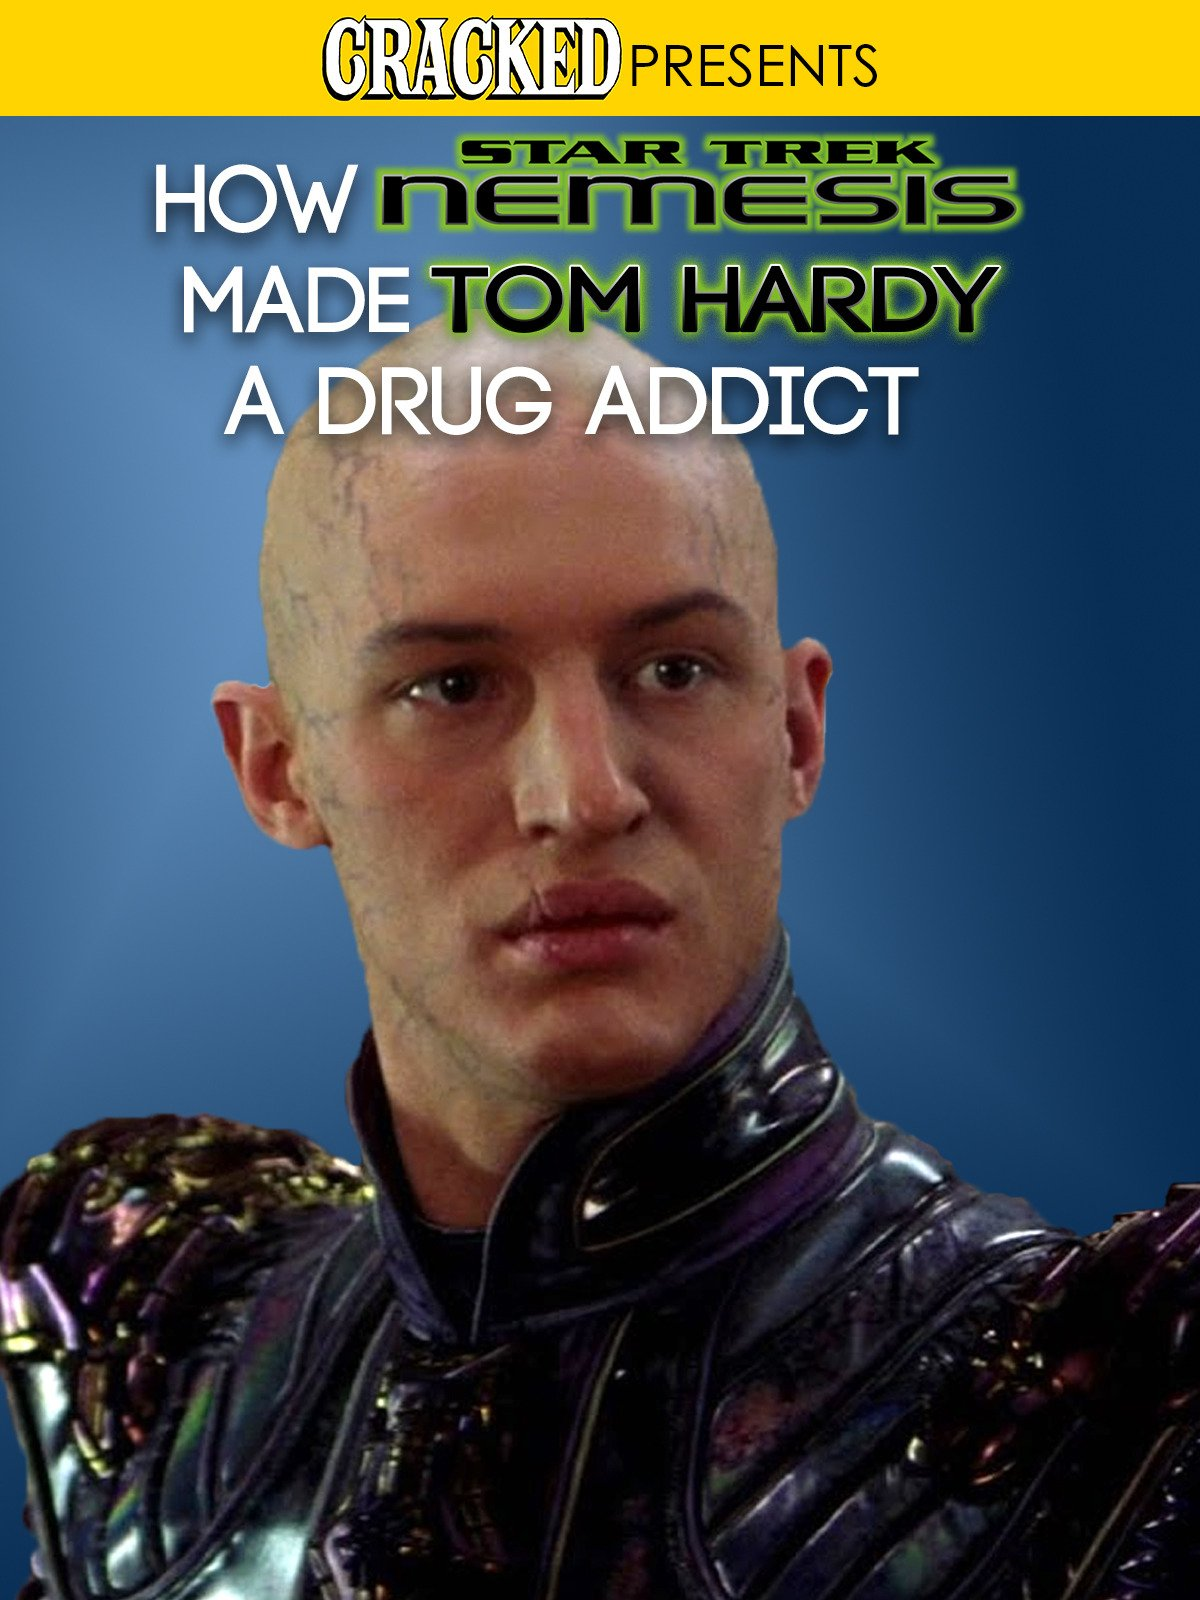 How Star Trek Made Tom Hardy A Drug Addict on Amazon Prime Instant Video UK